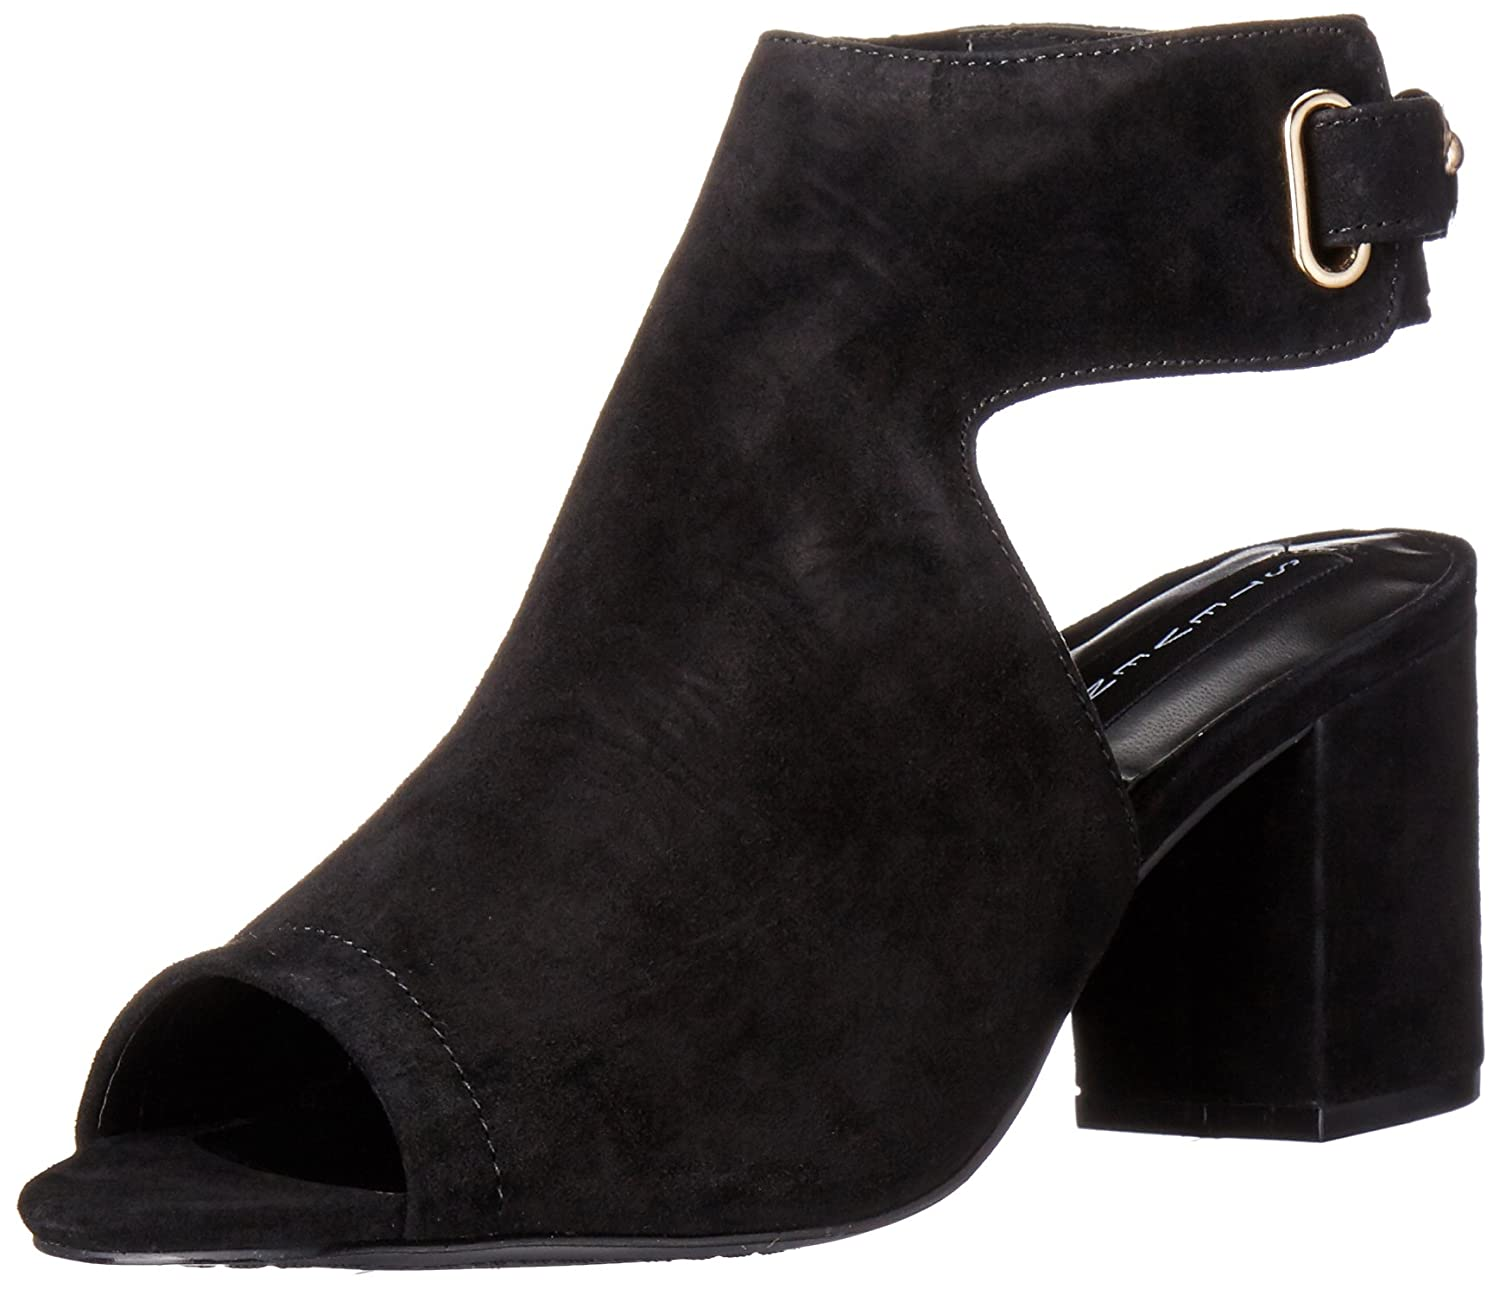 b13161507d2 STEVEN by Steve Madden Women s Venuz Dress Sandal Black Leather 6 B(M) US   Buy Online at Low Prices in India - Amazon.in